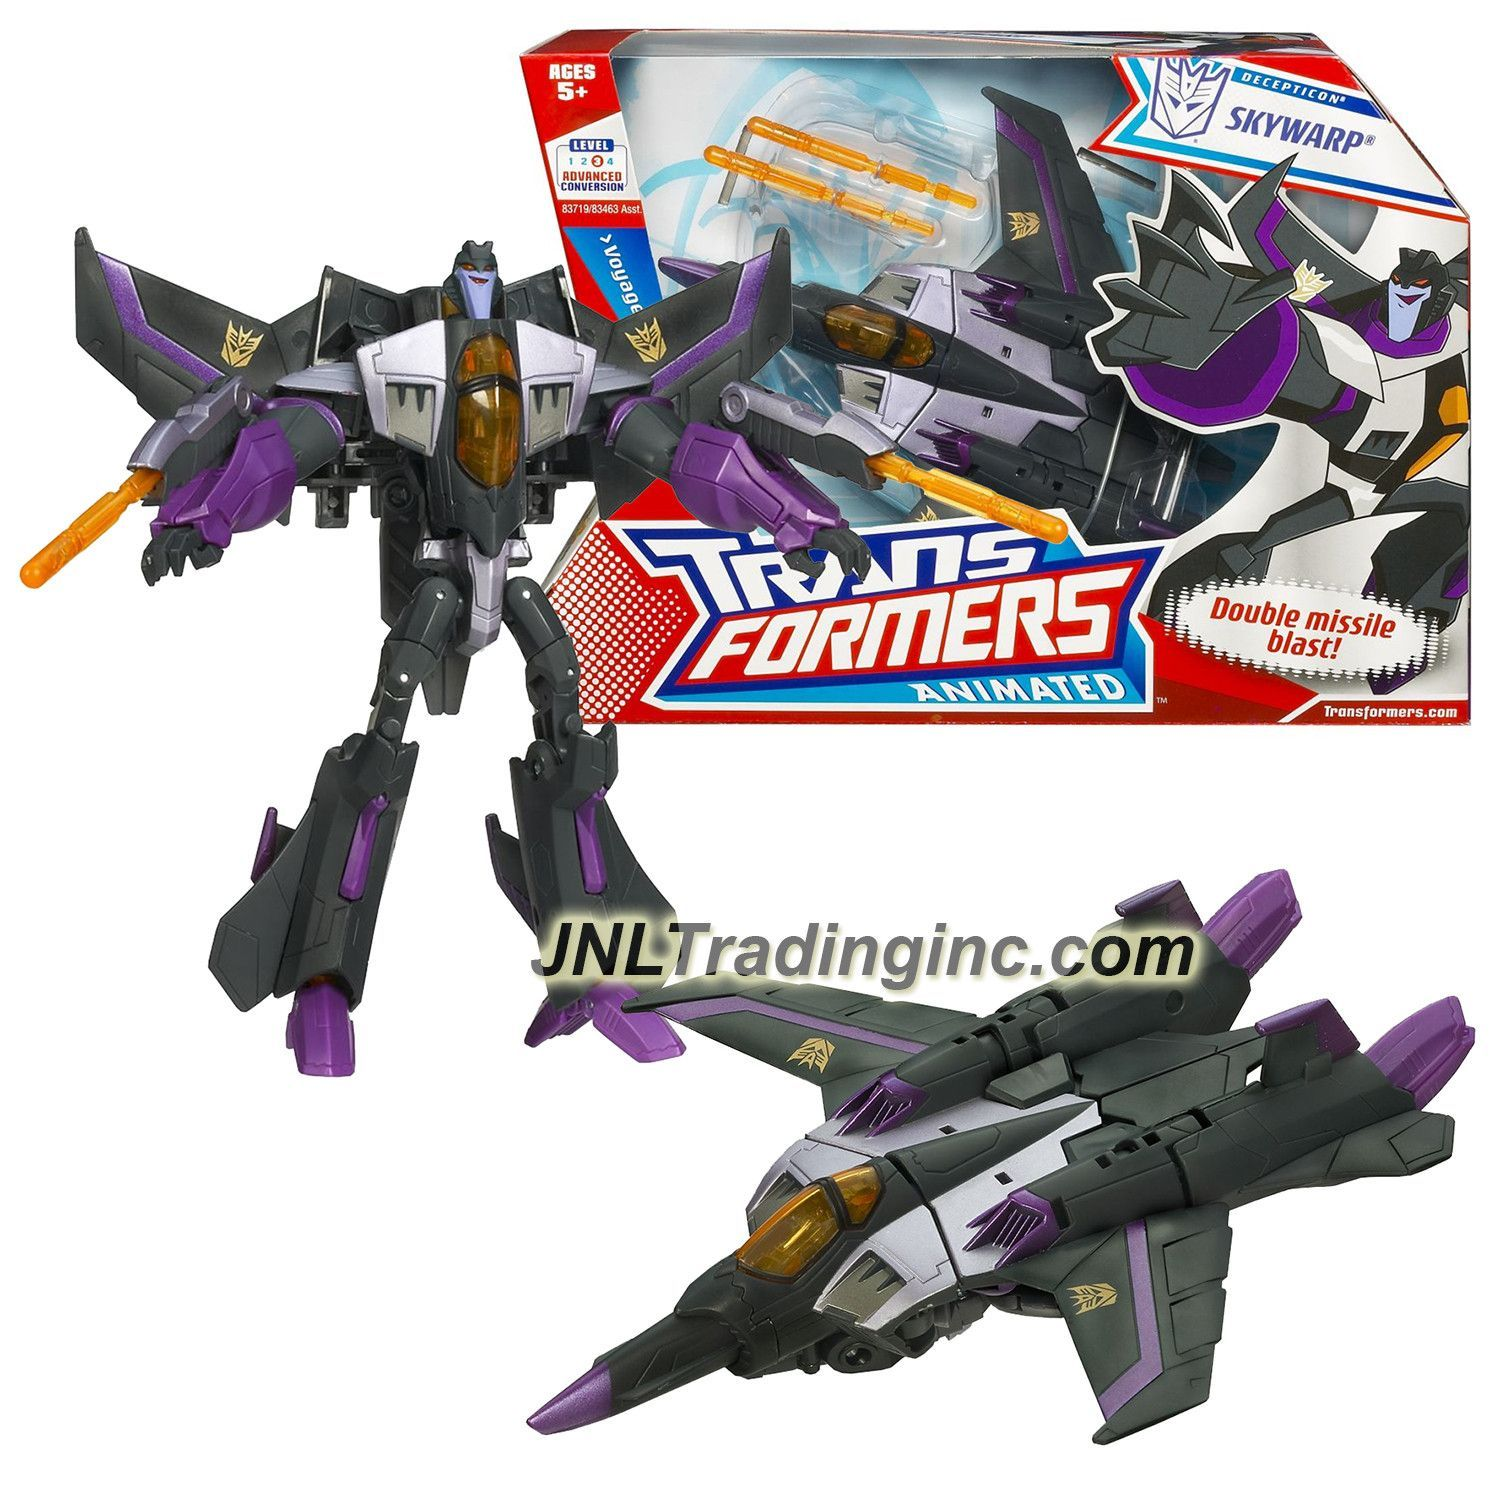 Hasbro Transformers Animated Series Voyager Class 7 Tall Figure Decepticon Fearful Super Pilot Skywarp With Missile Launchers Vehicle Mode Jet Hasbro Transformers Transformers Animation Series